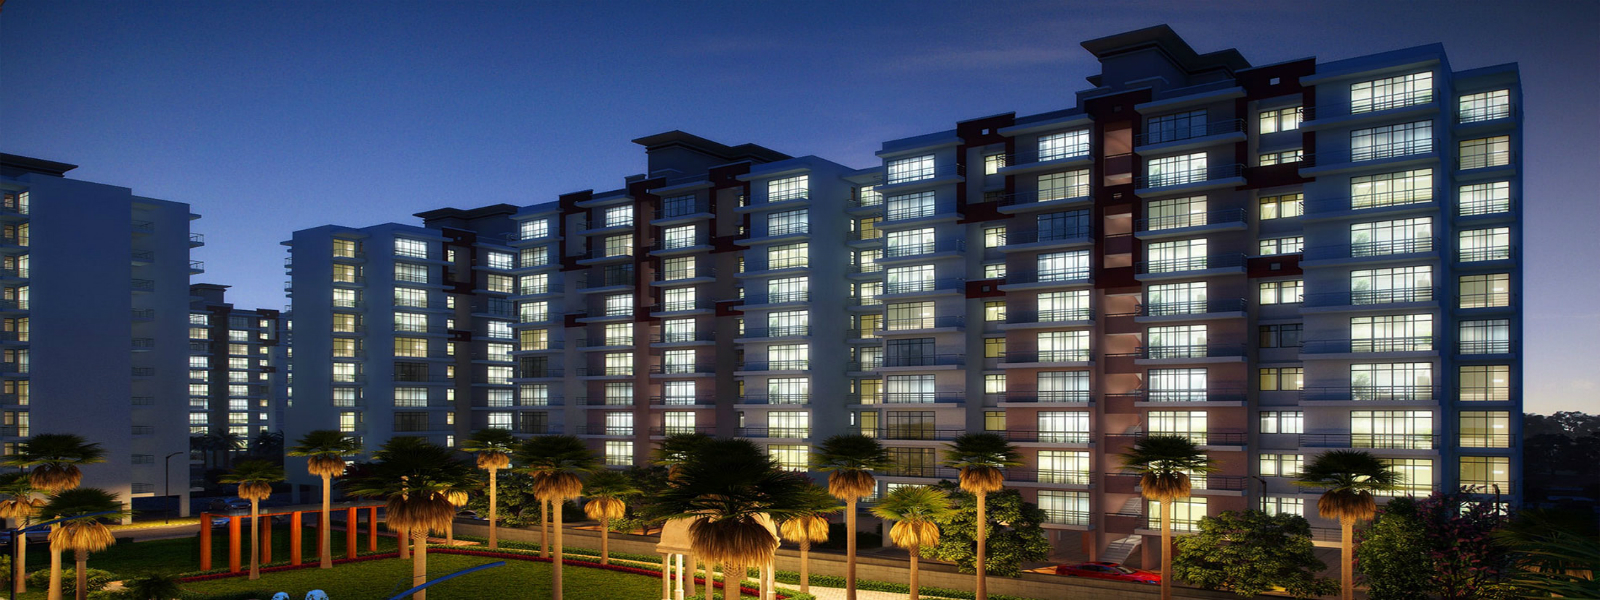 Breez Global Heights Sohna Gurgaon